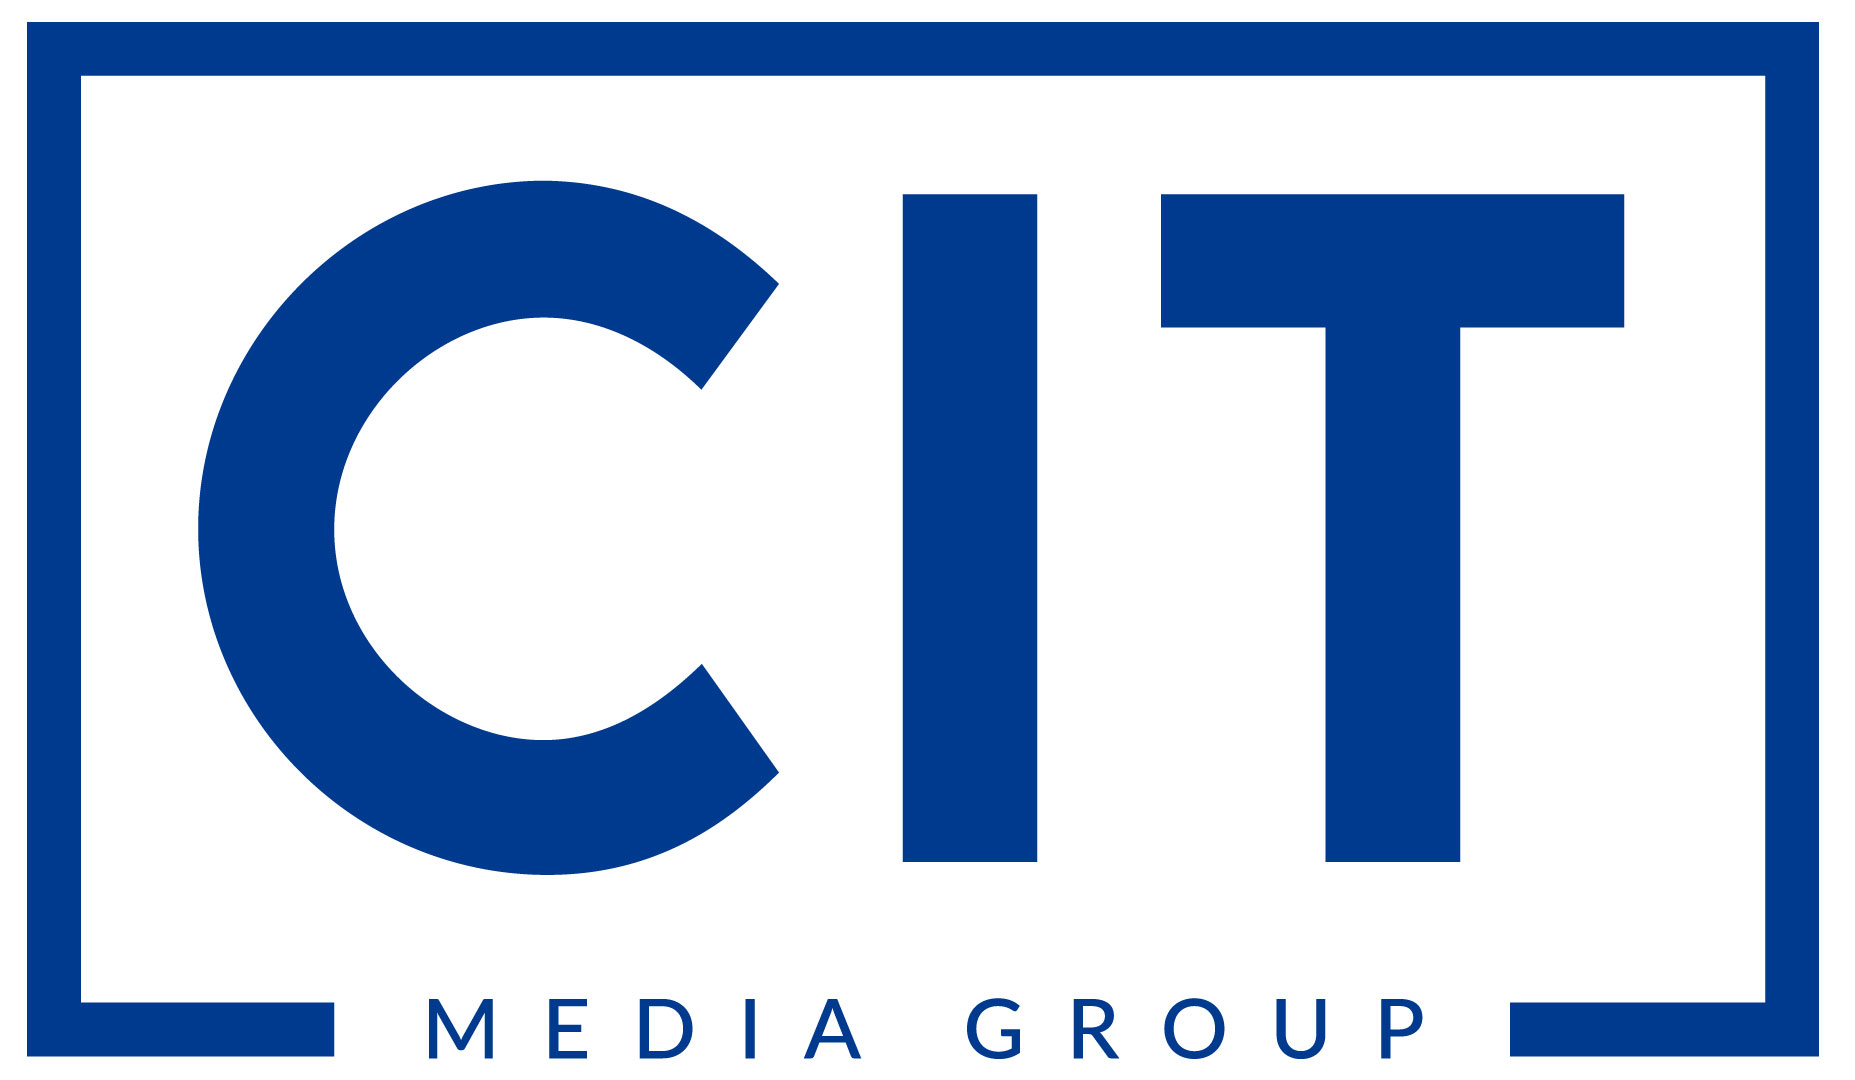 Colin Carlsen Becomes New COO Of CIT MEDIA GROUP As The Company Leaves Stealth Mode